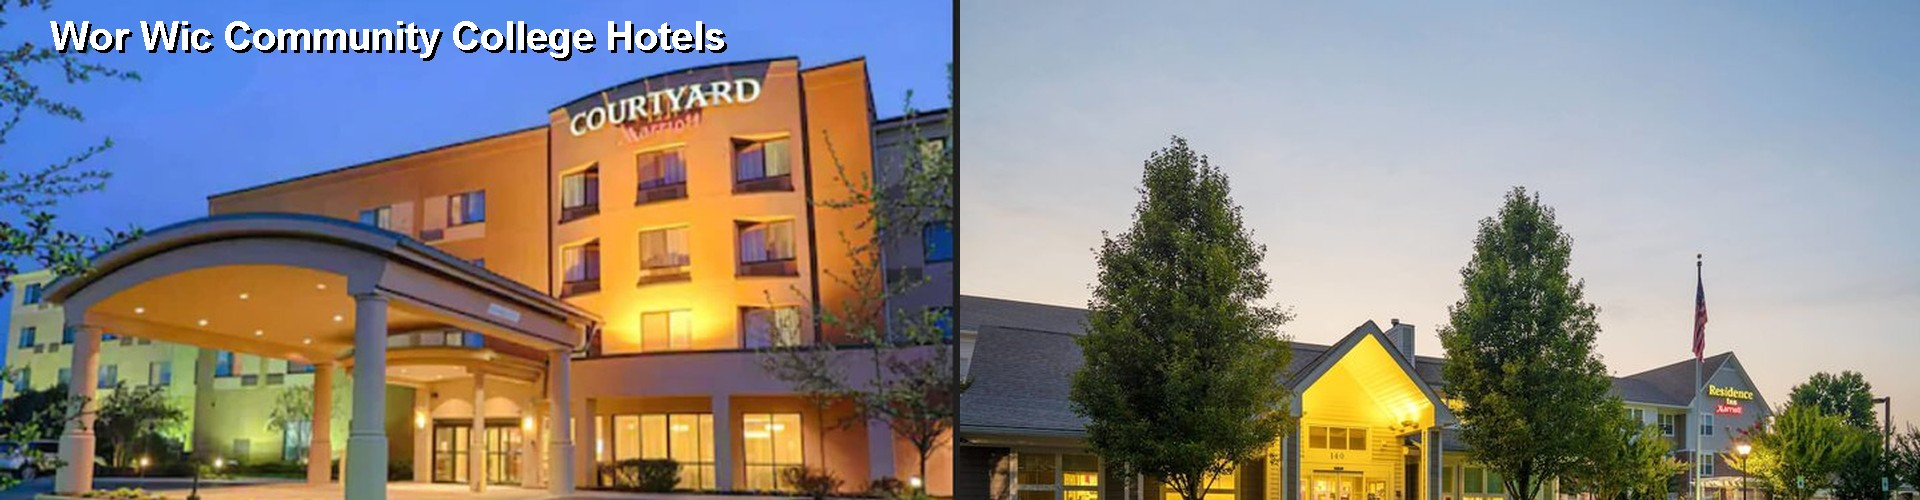 5 Best Hotels near Wor Wic Community College